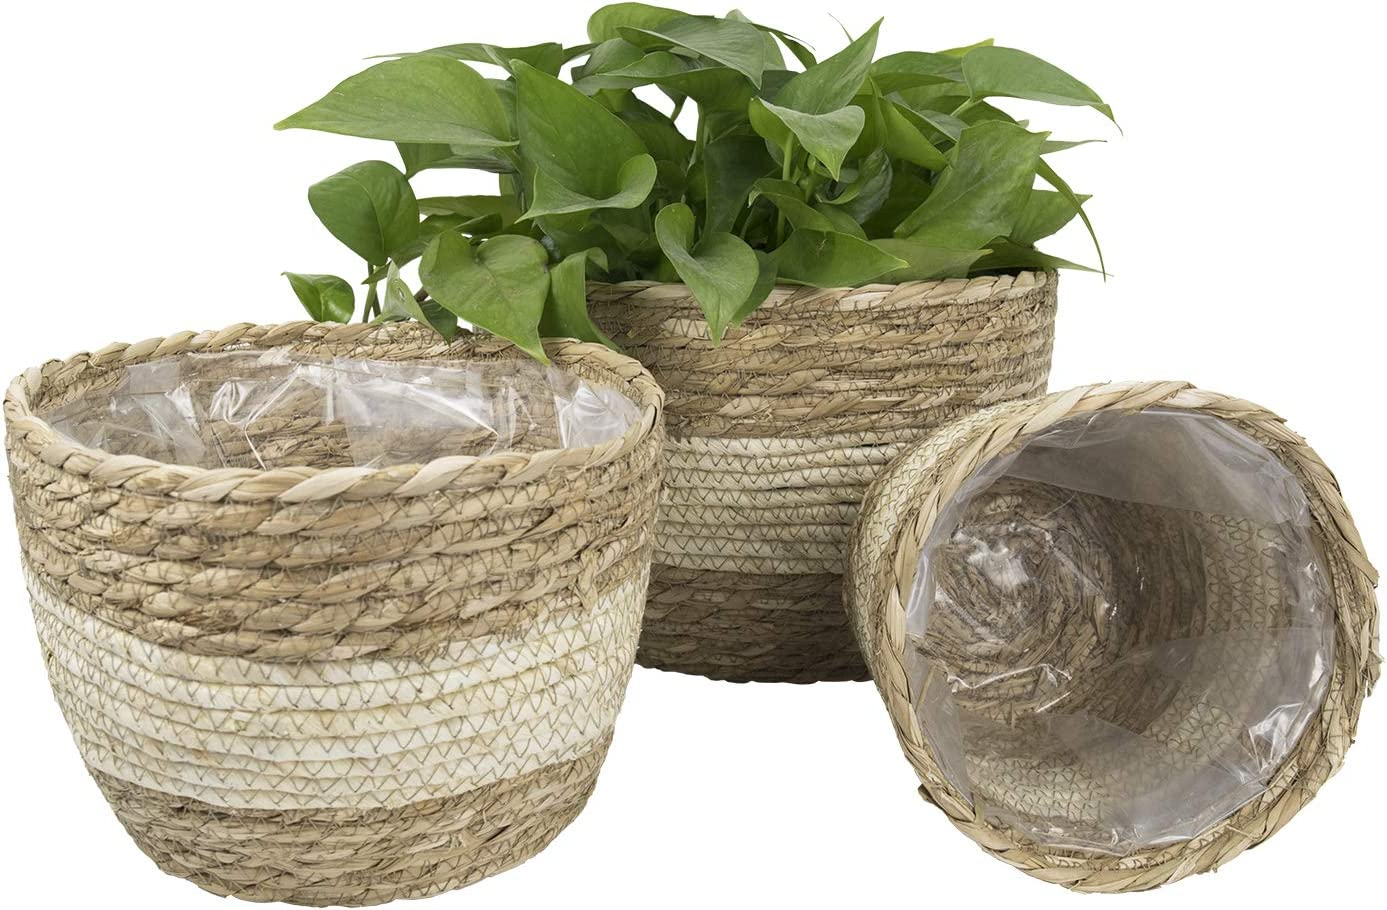 Seagrass Planter Basket Indoor Outdoor, Flower Pots Cover, Plant Containers, Beige, 10 inch